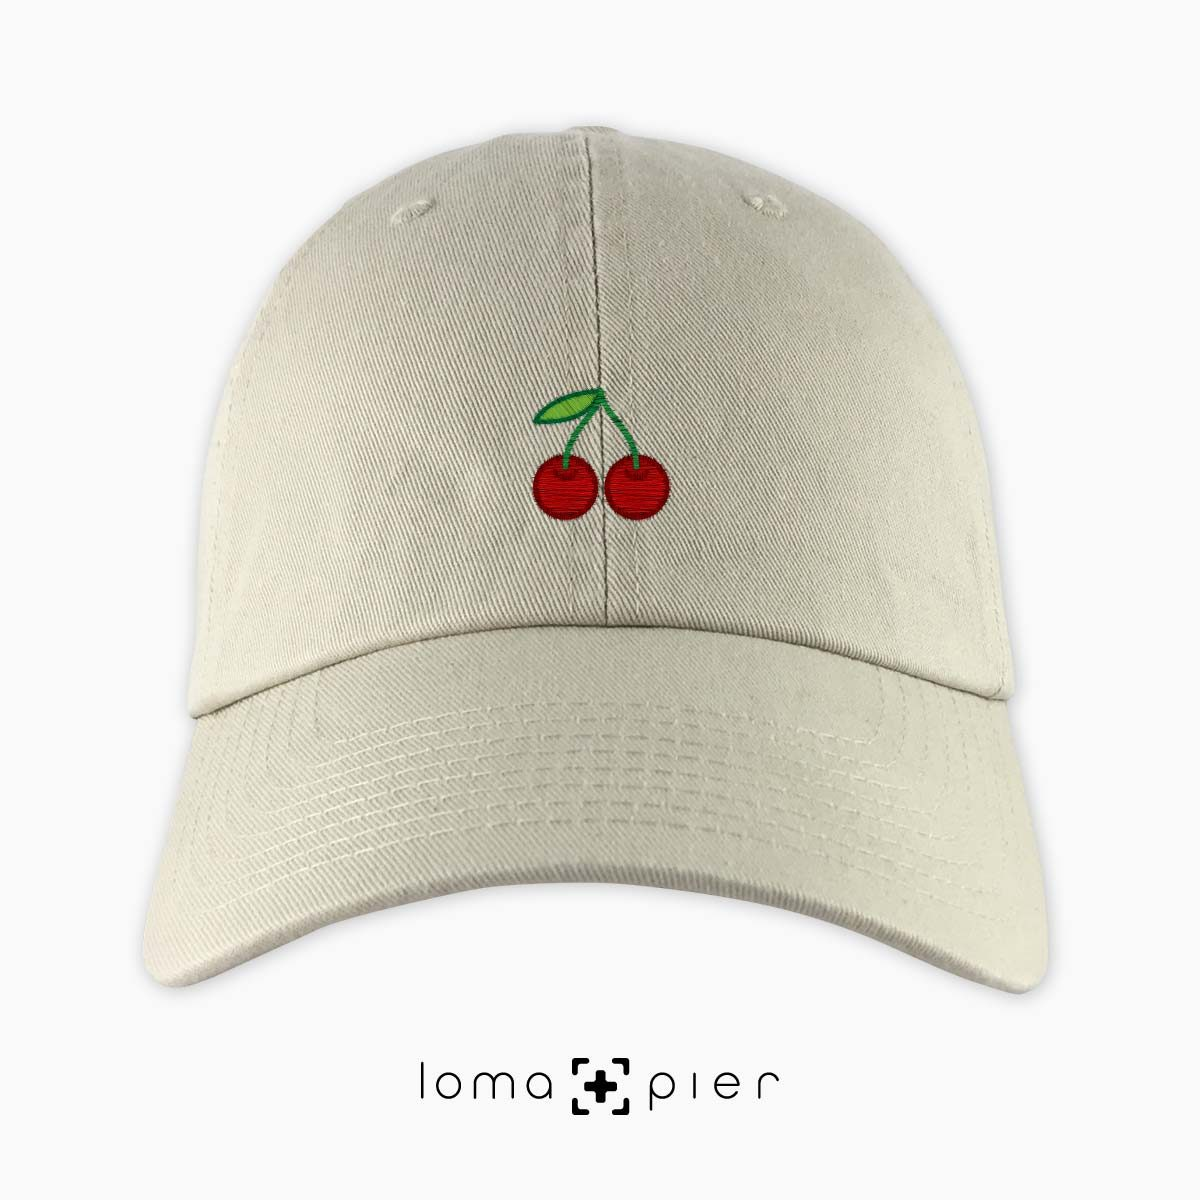 CHERRIES icon embroidered on a khaki dad hat by loma+pier hat store made in the USA